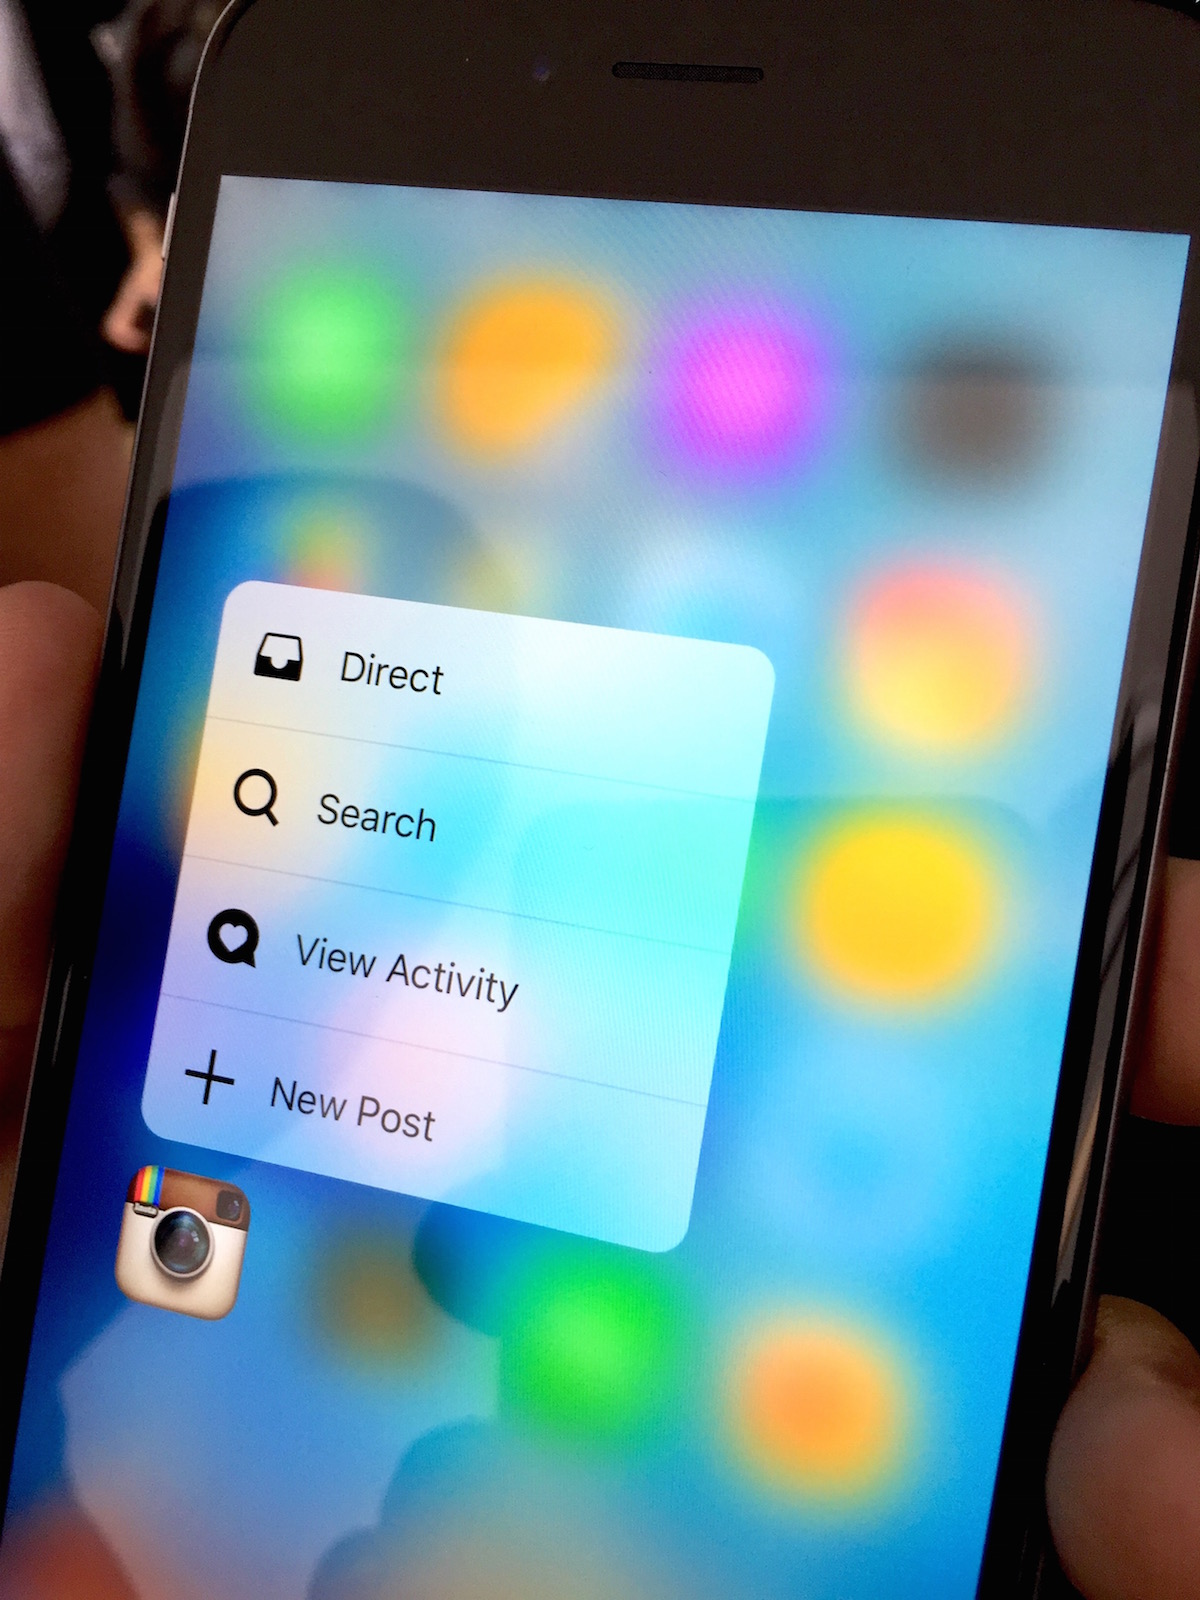 iPhone 6s hands-on 3d Touch